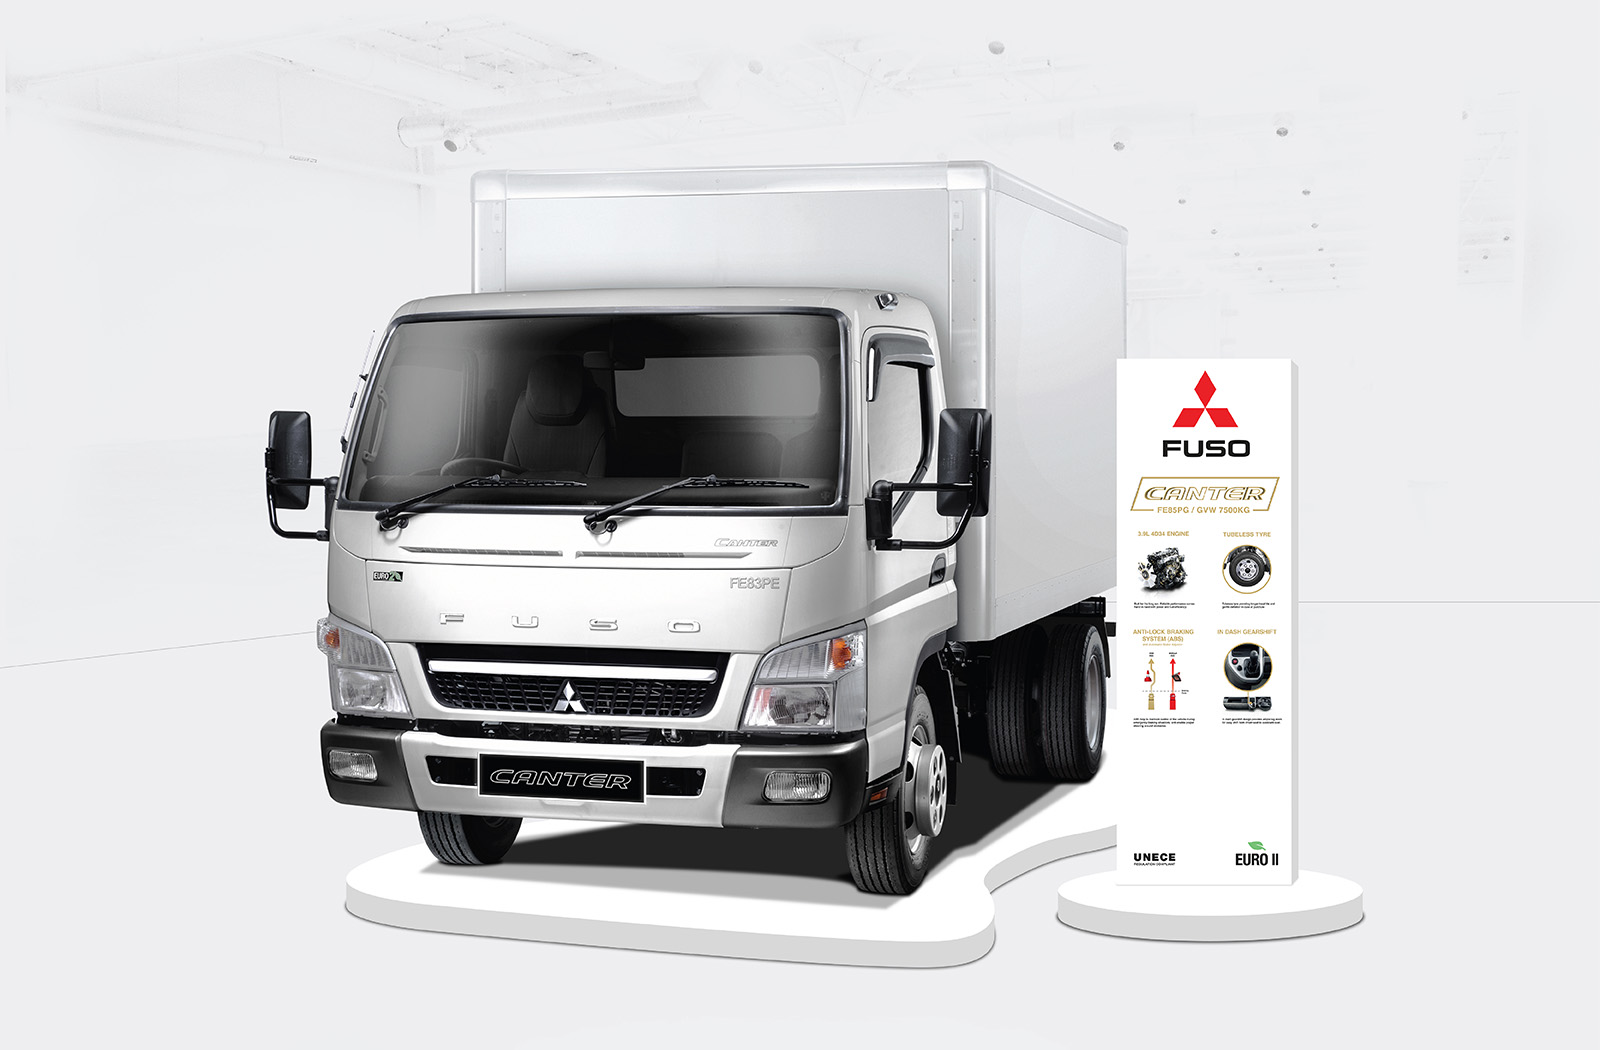 Fuso Trucks Canter FE/FG 2017 exhibition pylon design with product USP accompanying a truck on a platform